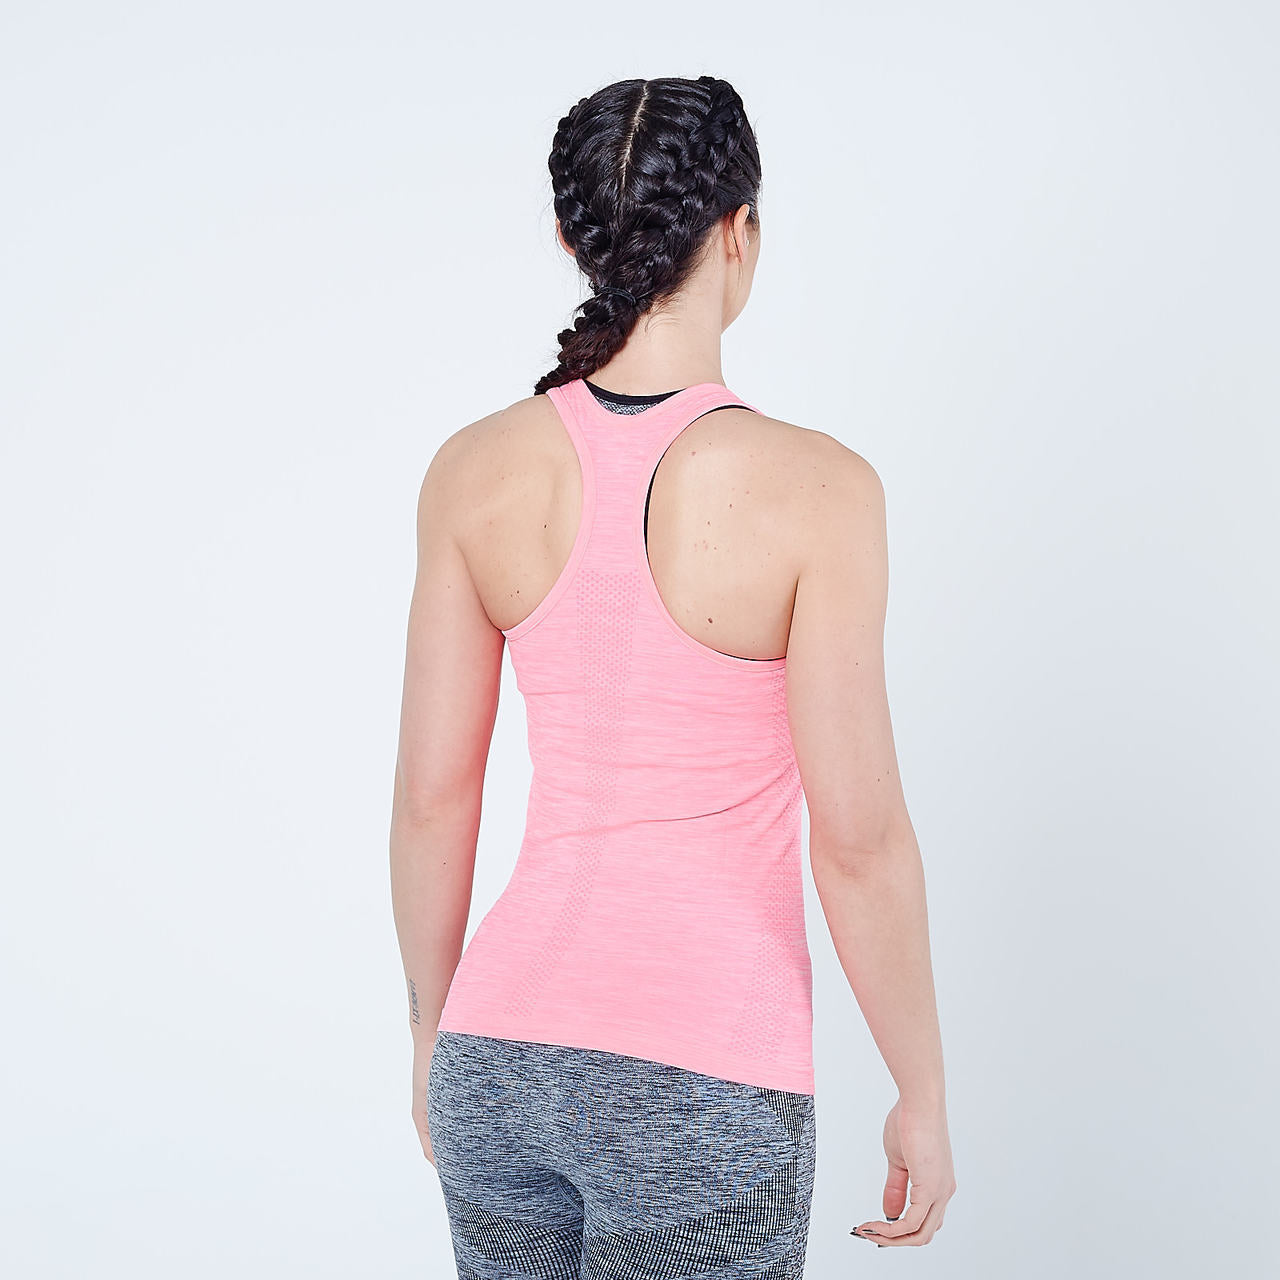 Women's Physiq Apparel - HyperKnit Tank Top - Ultra Fuchsia